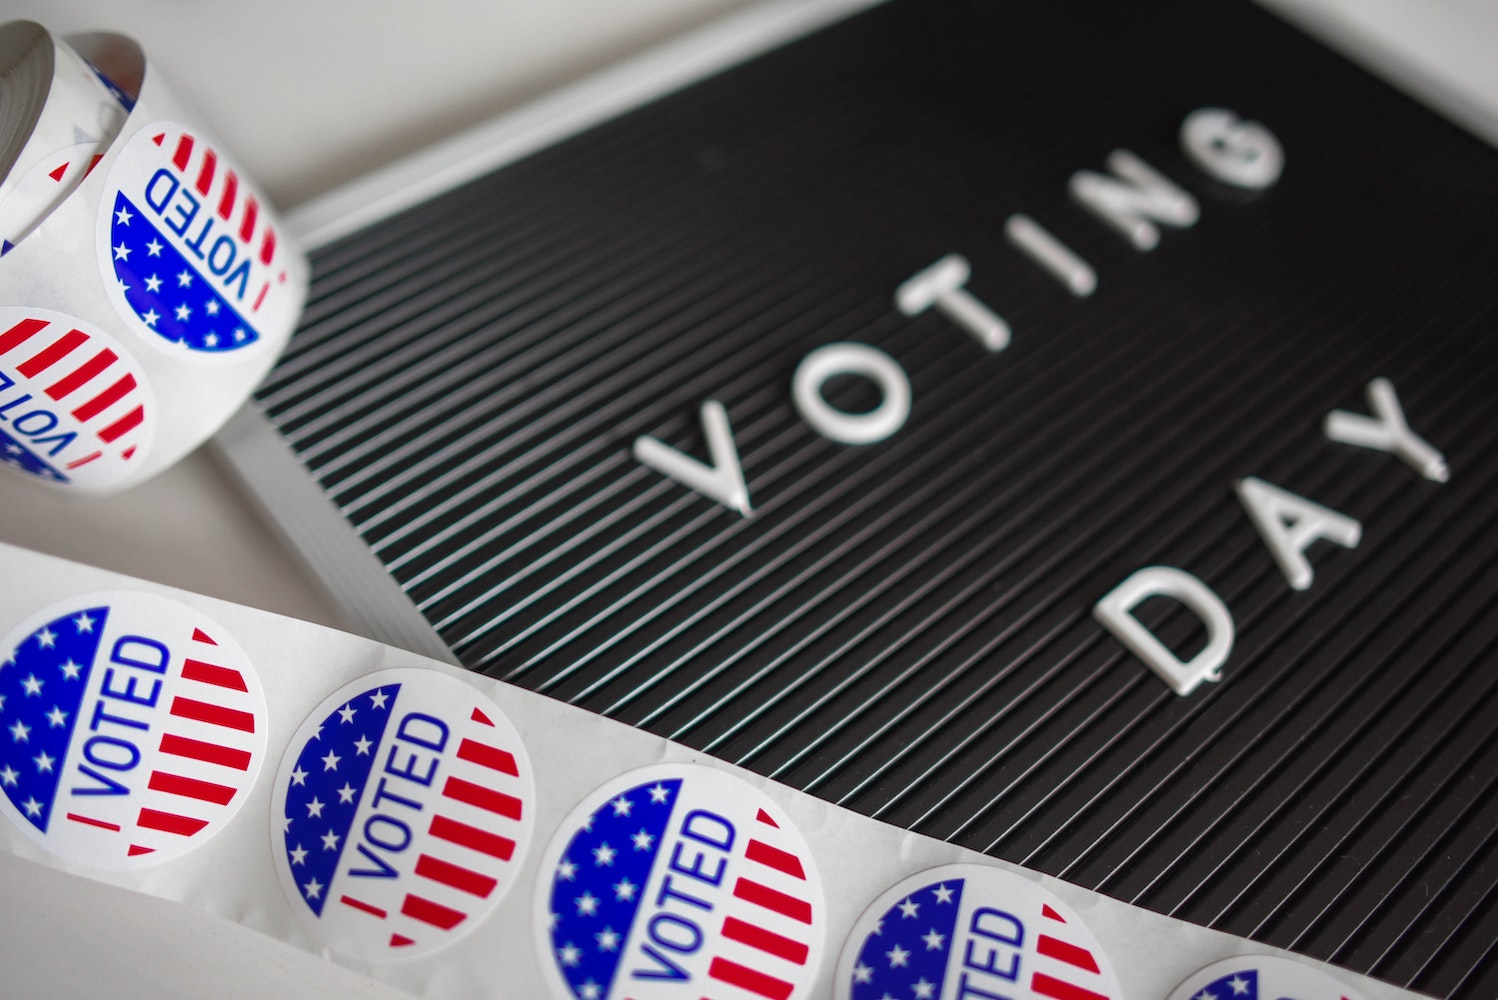 COVID-19 Voting Tips